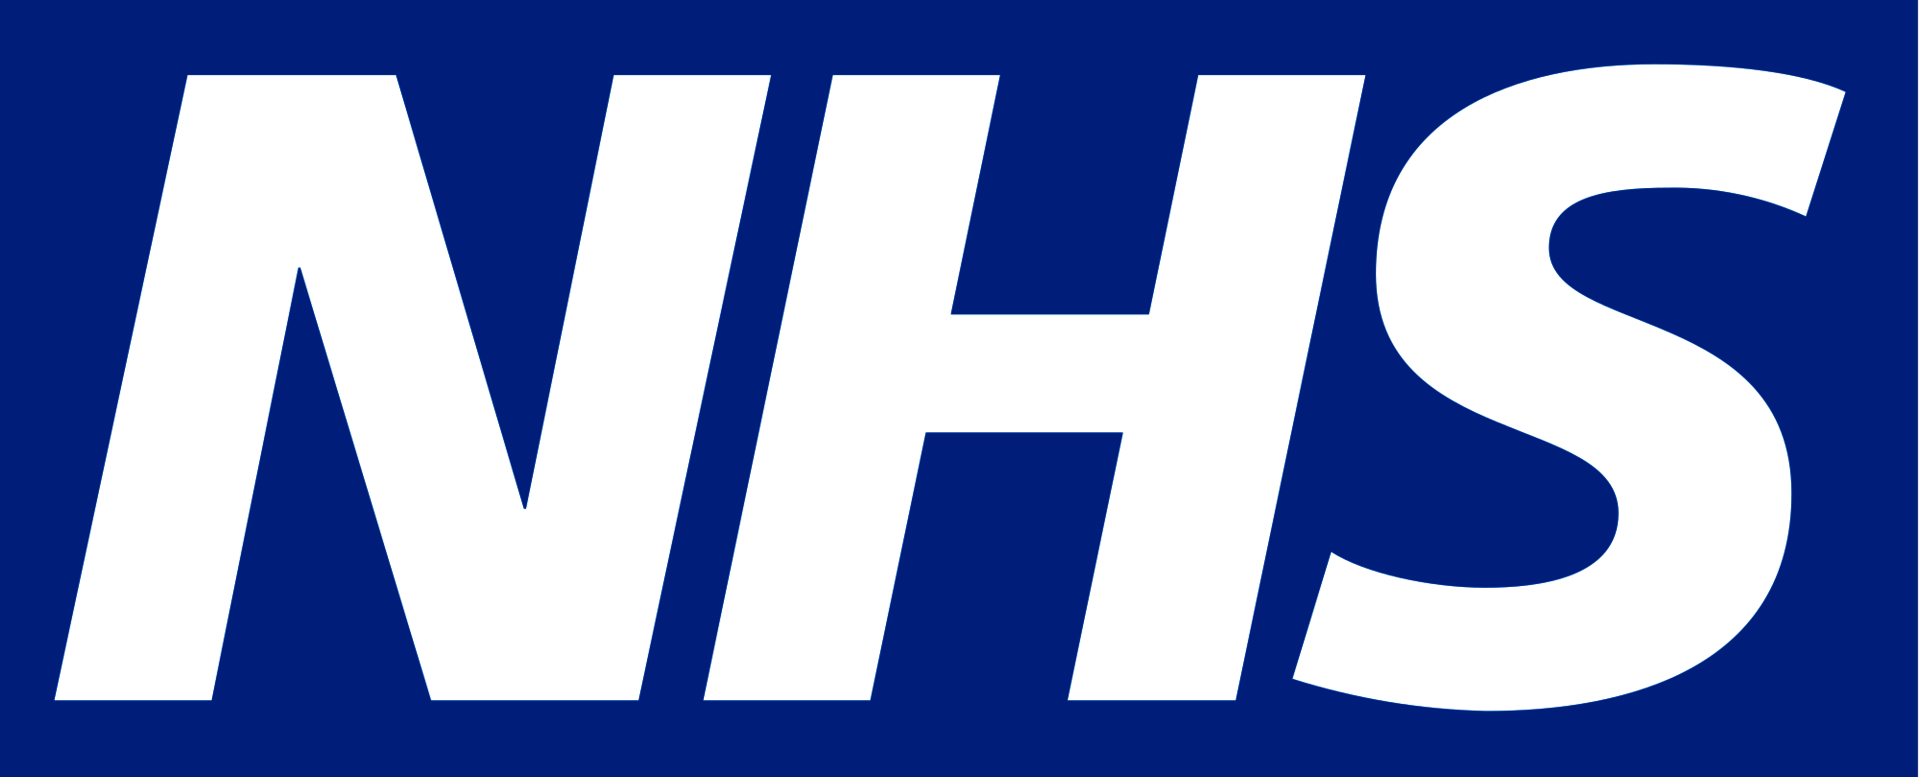 NHS discounts healthcare service discounts